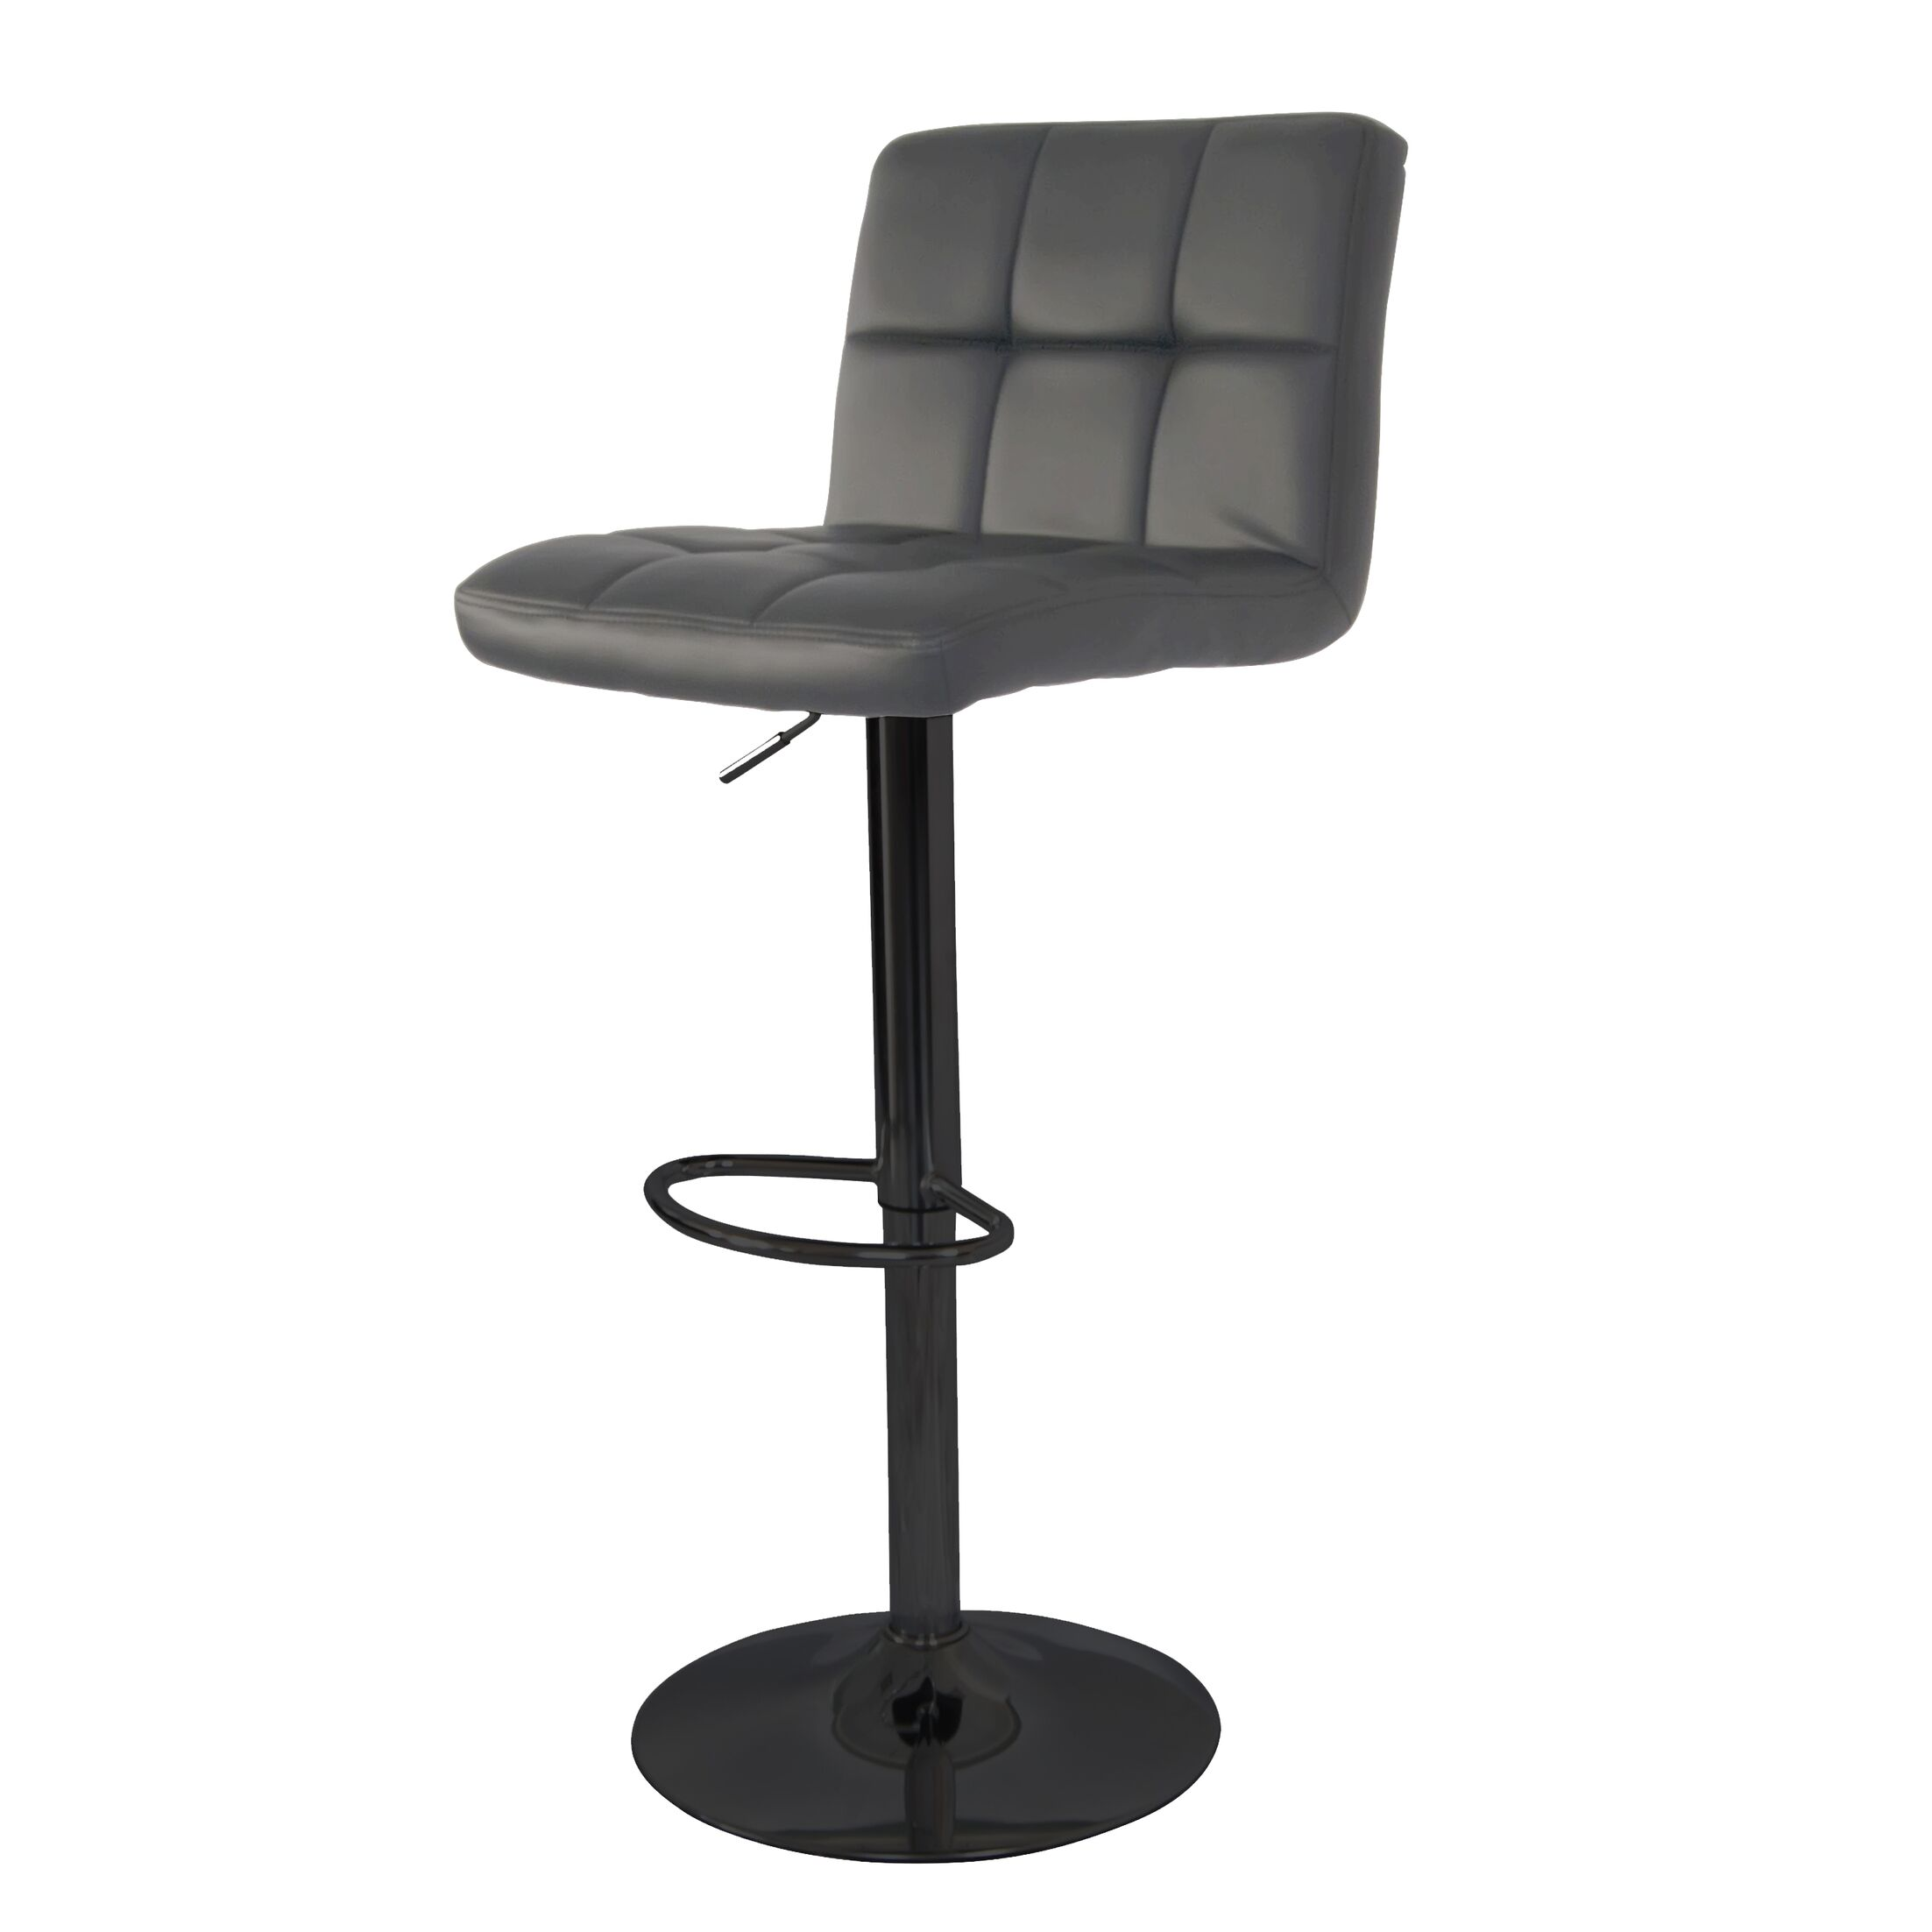 Ransome Adjustable Height Swivel Bar Stool Color: Black, Upholstery: Gray